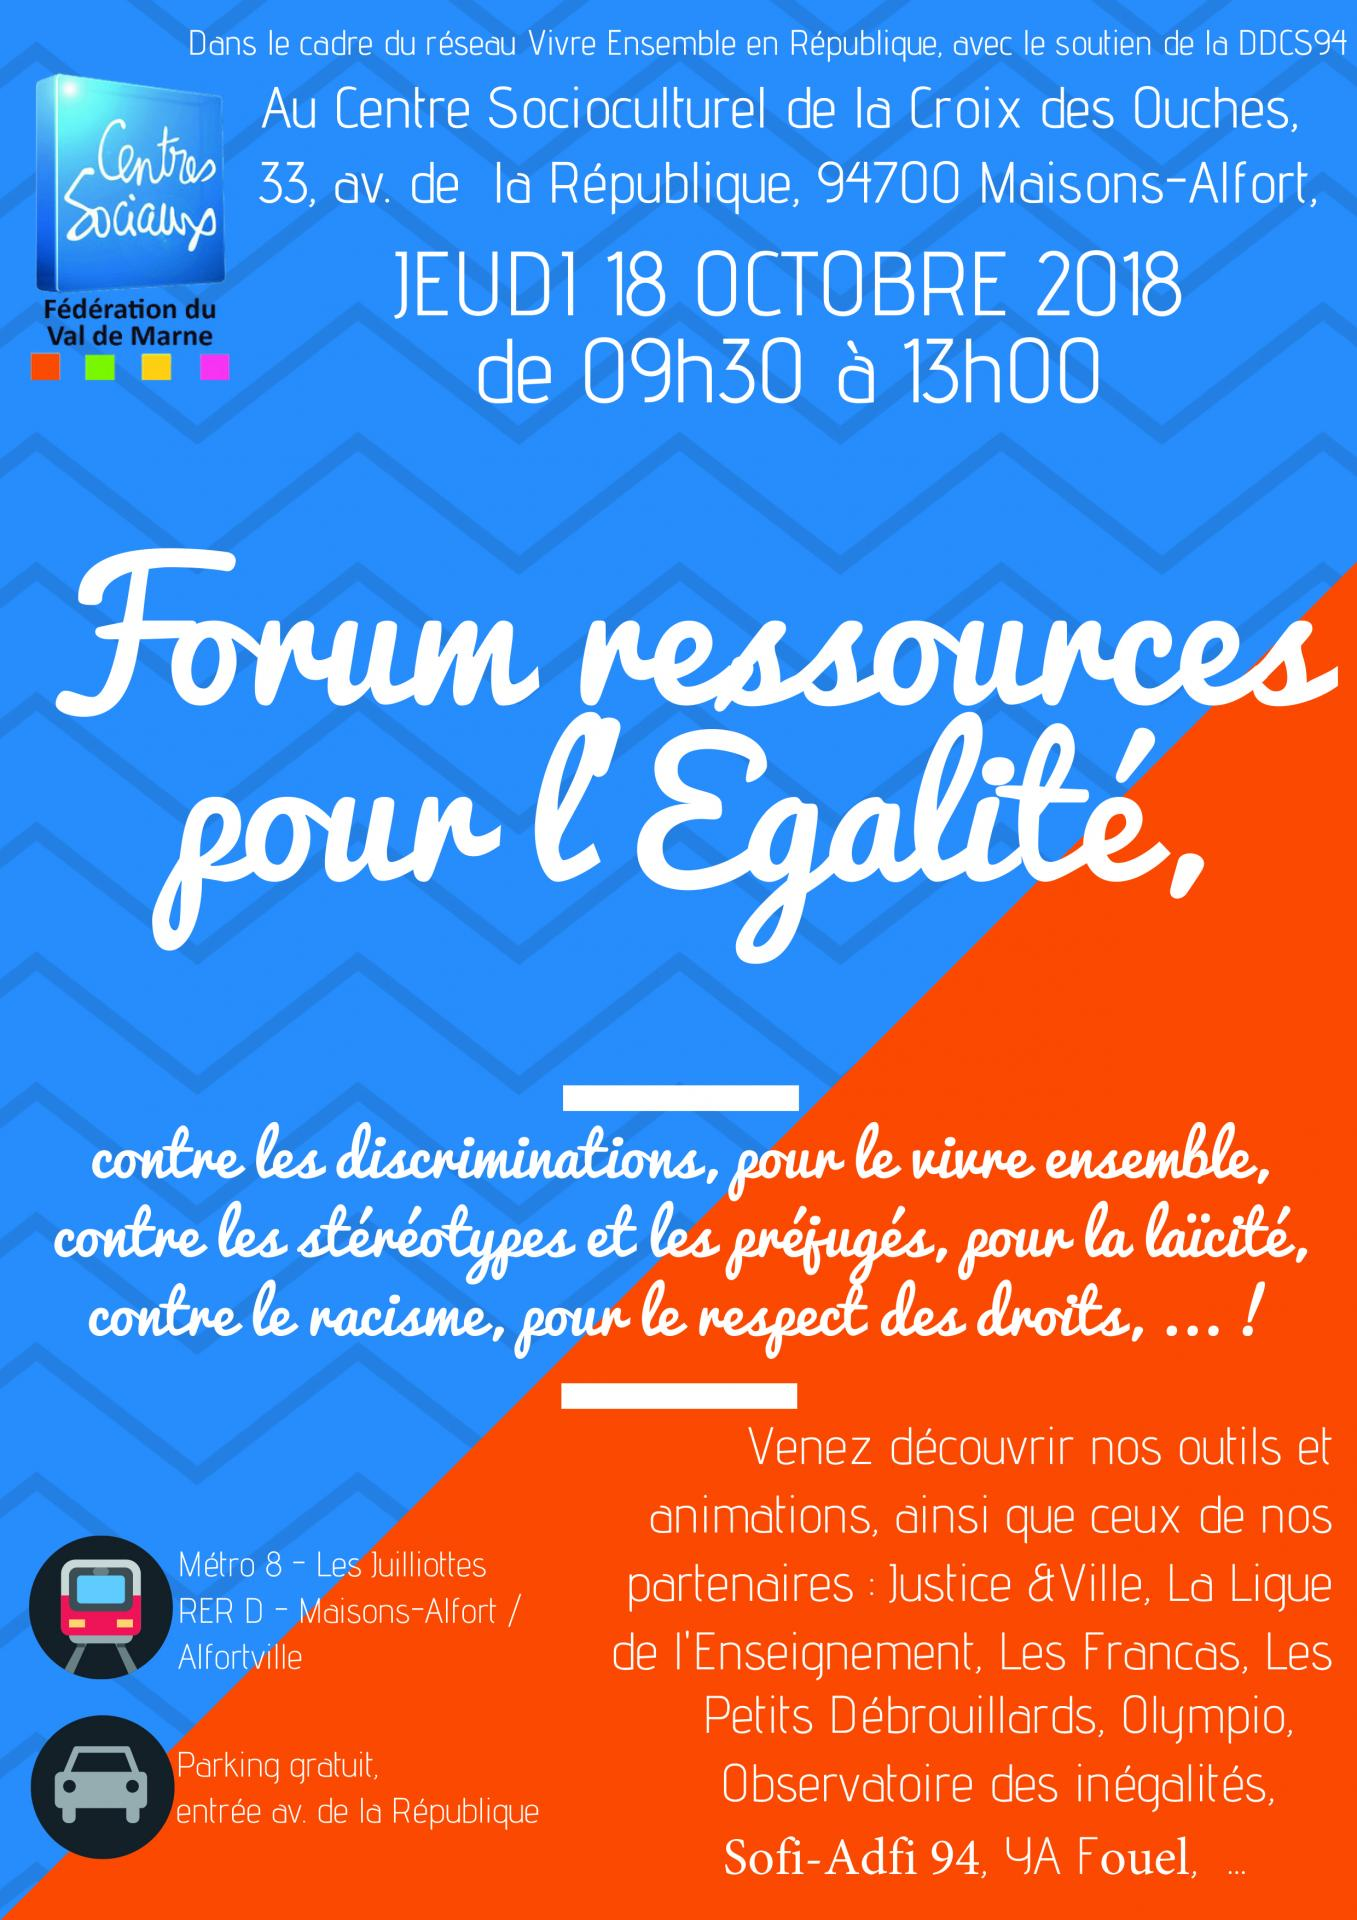 Invitation forum ressources egalite 18 octobre 1